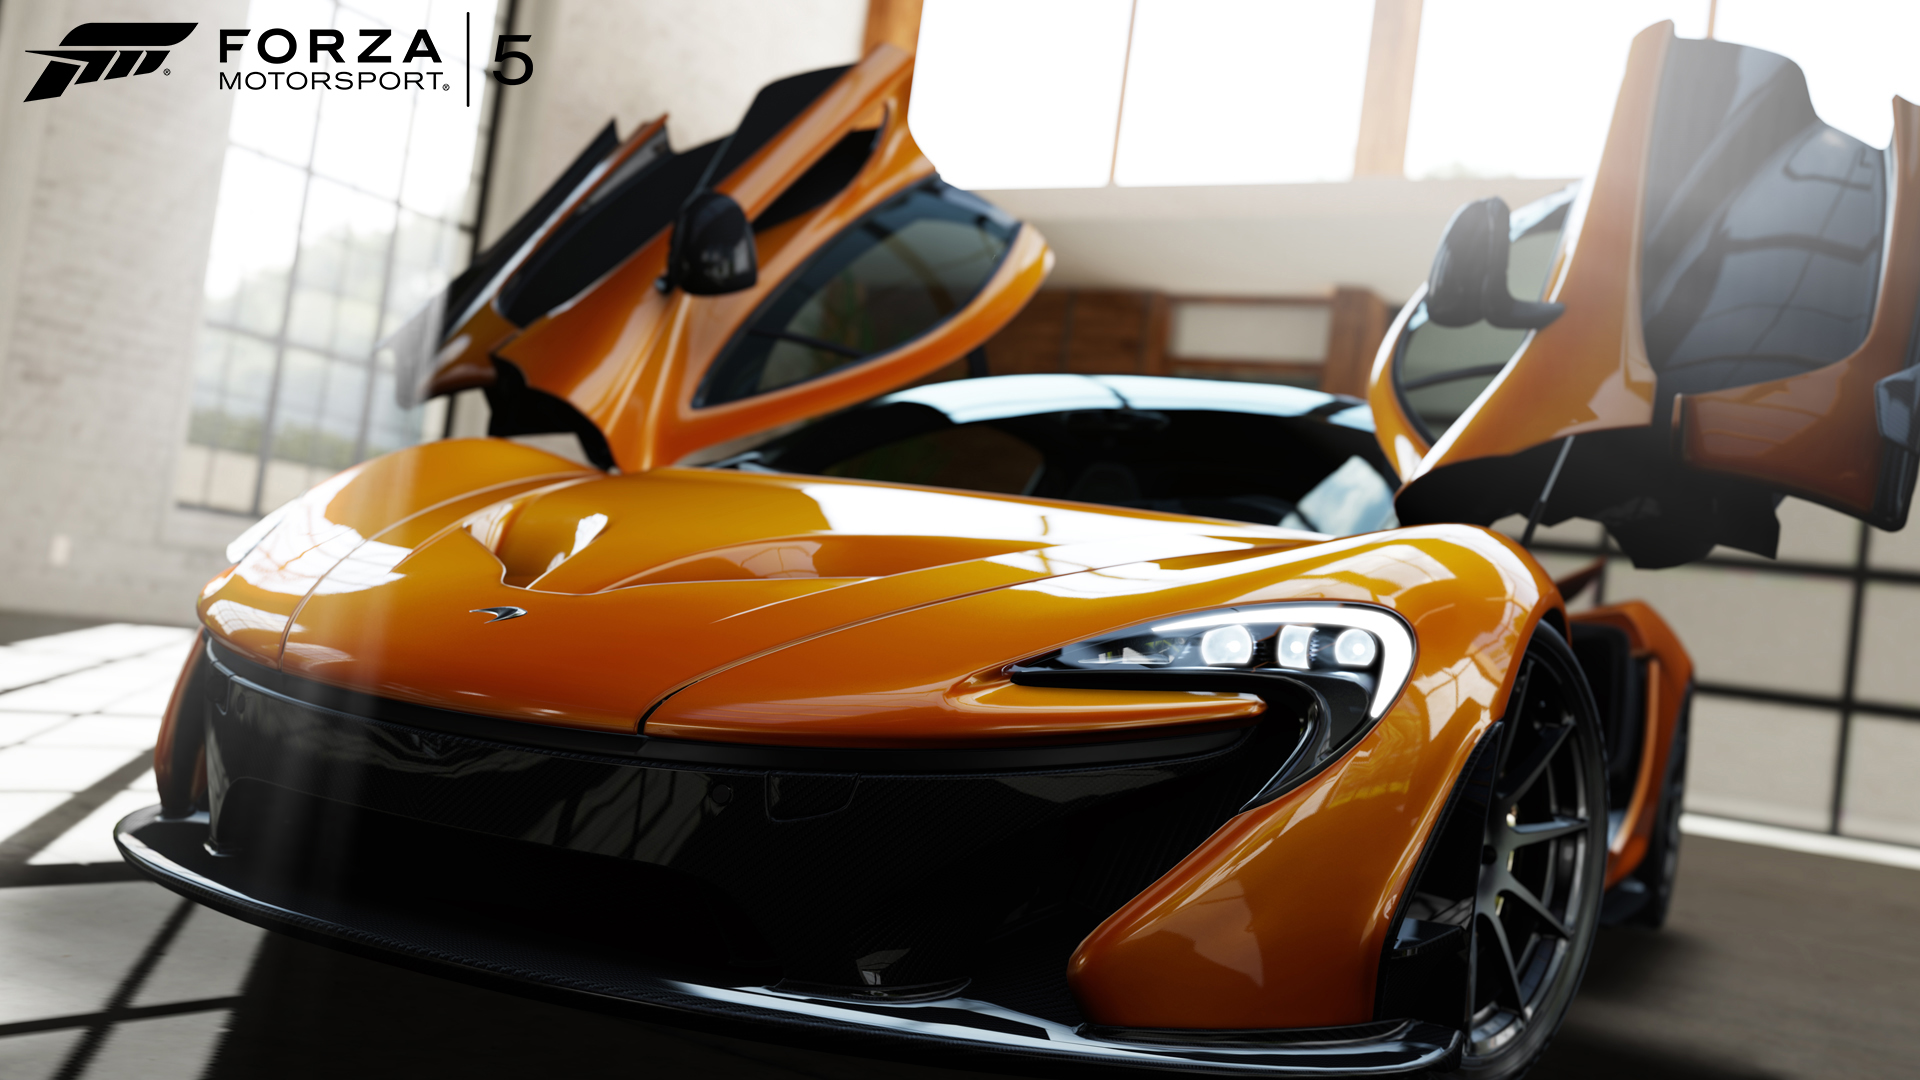 McLaren P1 in Forza Motorsport 5 471.13 Kb